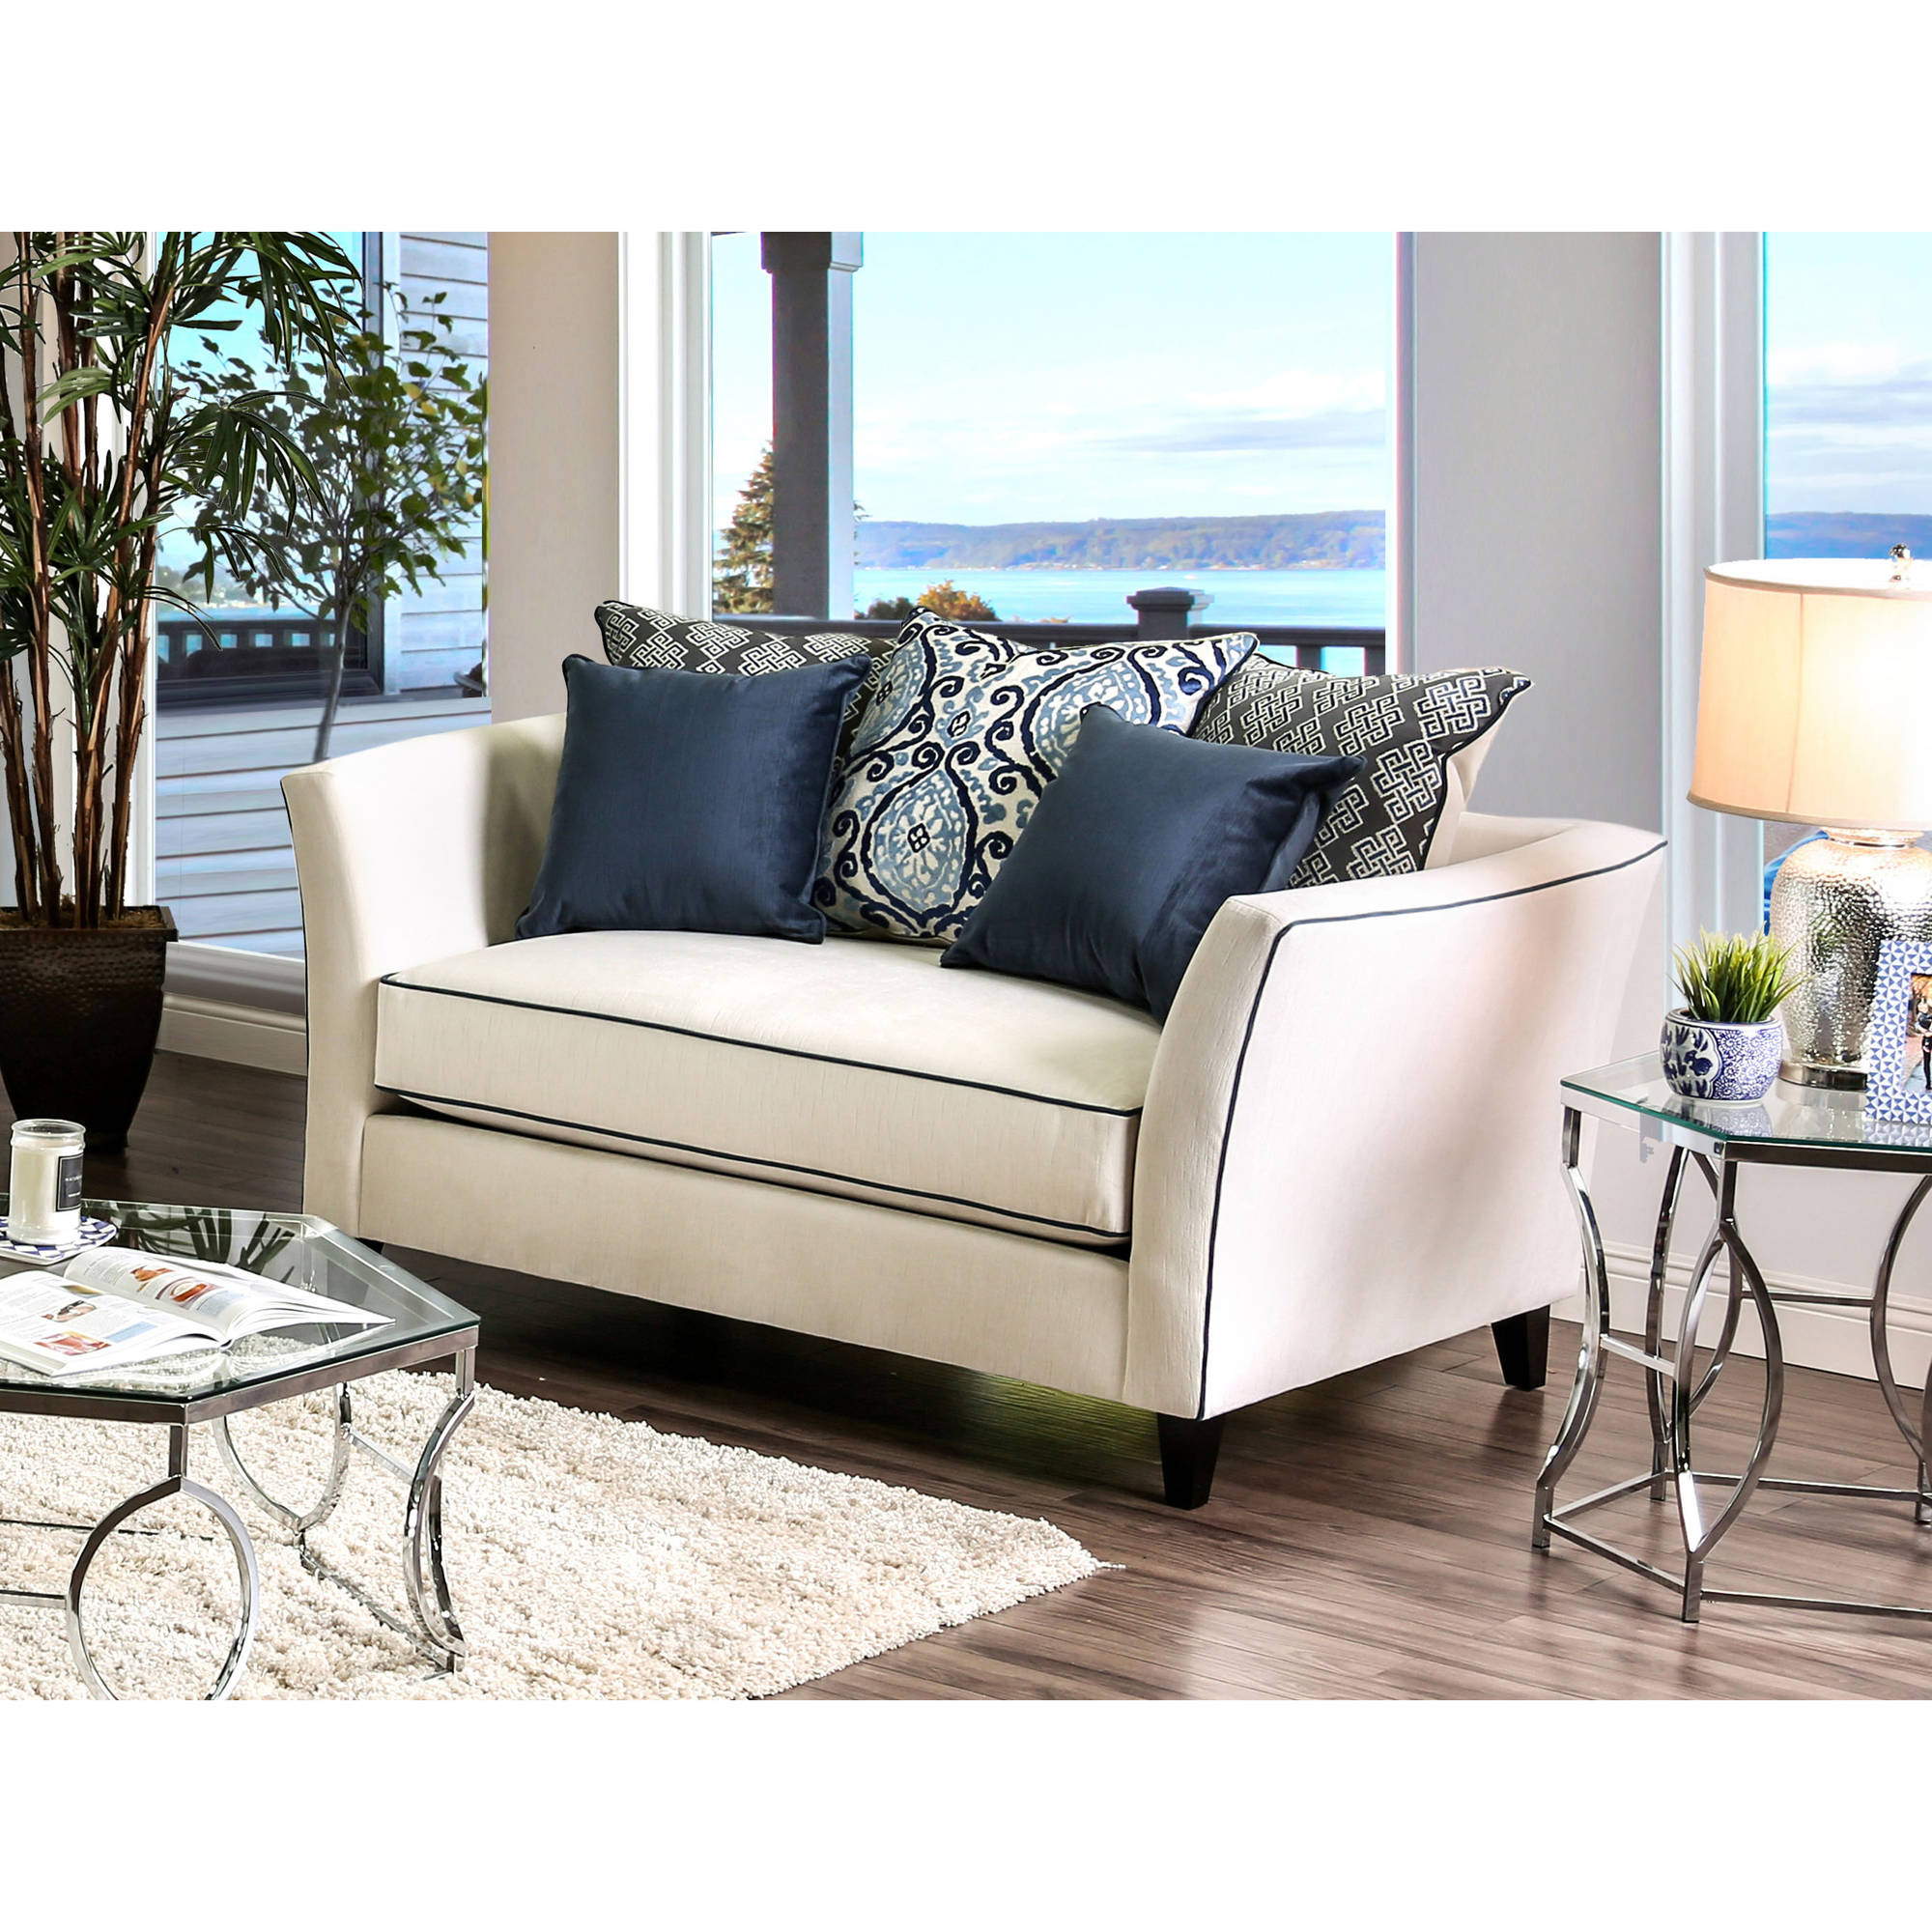 Furniture of America Neville Contemporary Loveseat, Multiple Colors